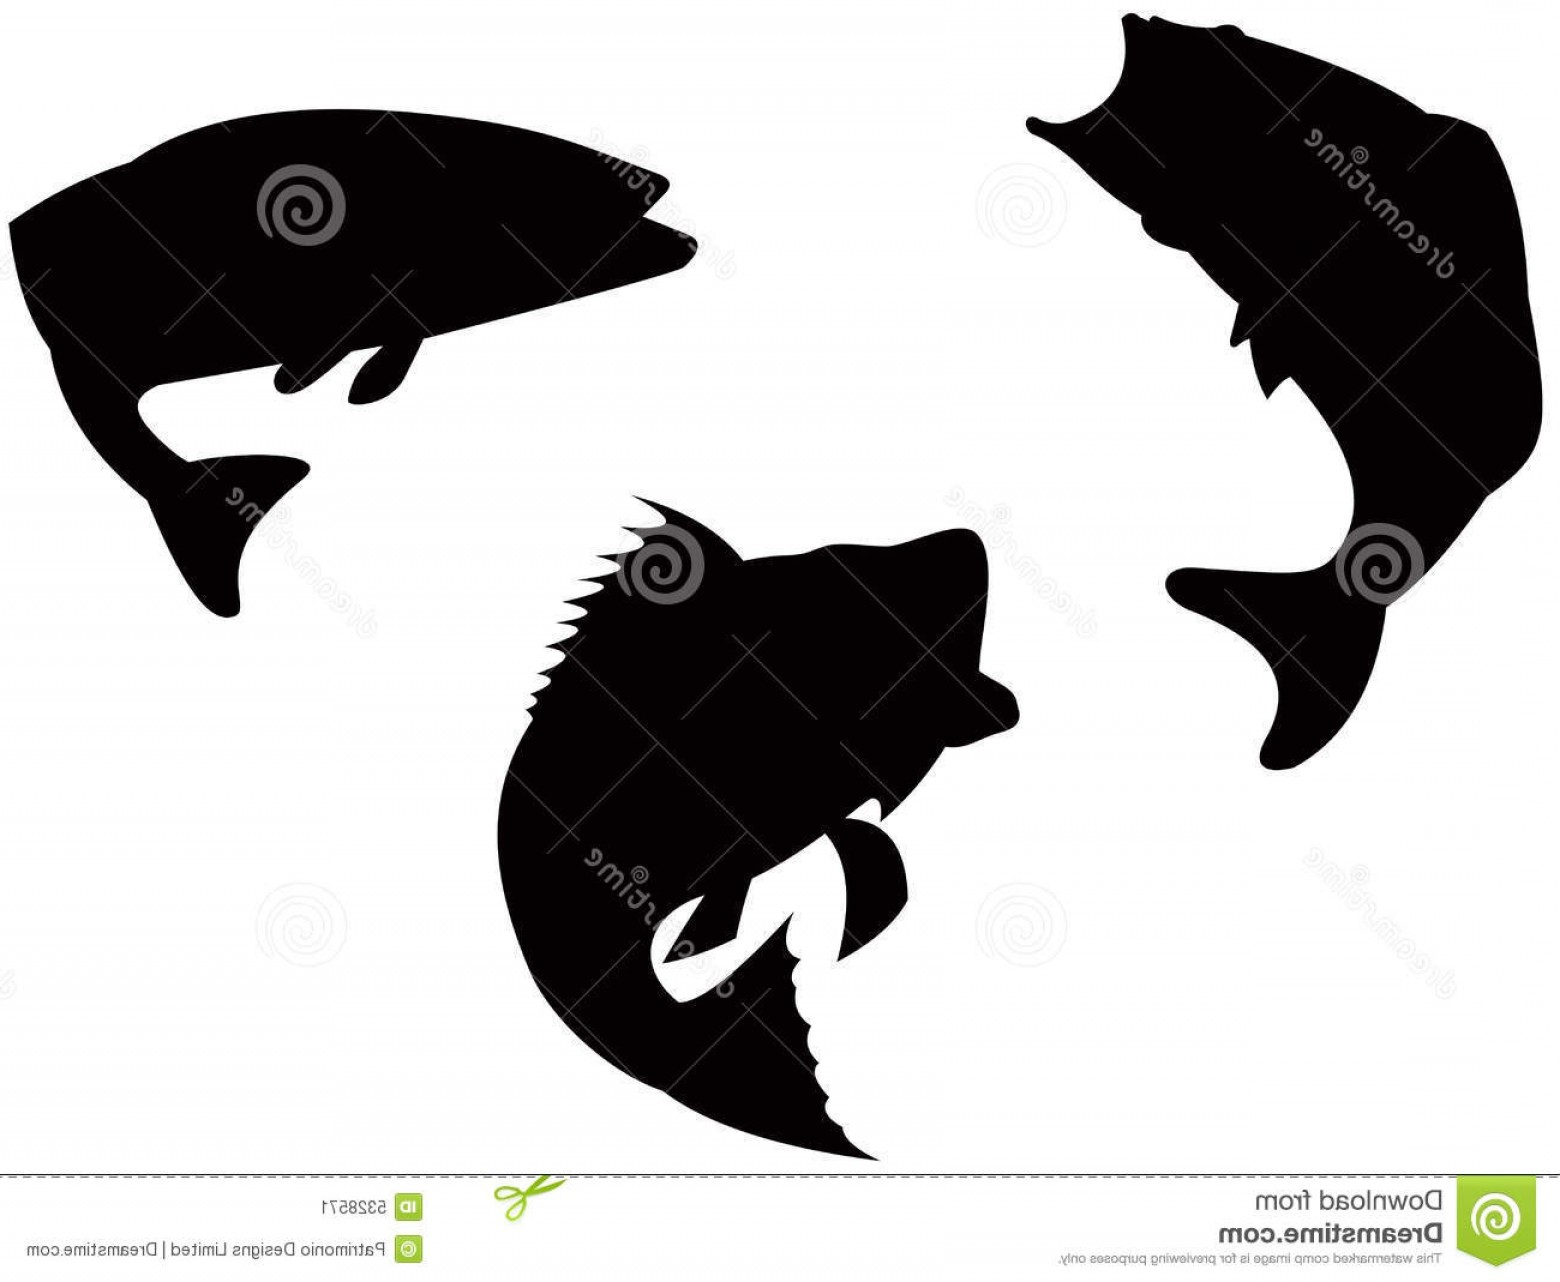 Largemouth Bass Silhouette Vector: Stock Image Sea Bass Jumping Image